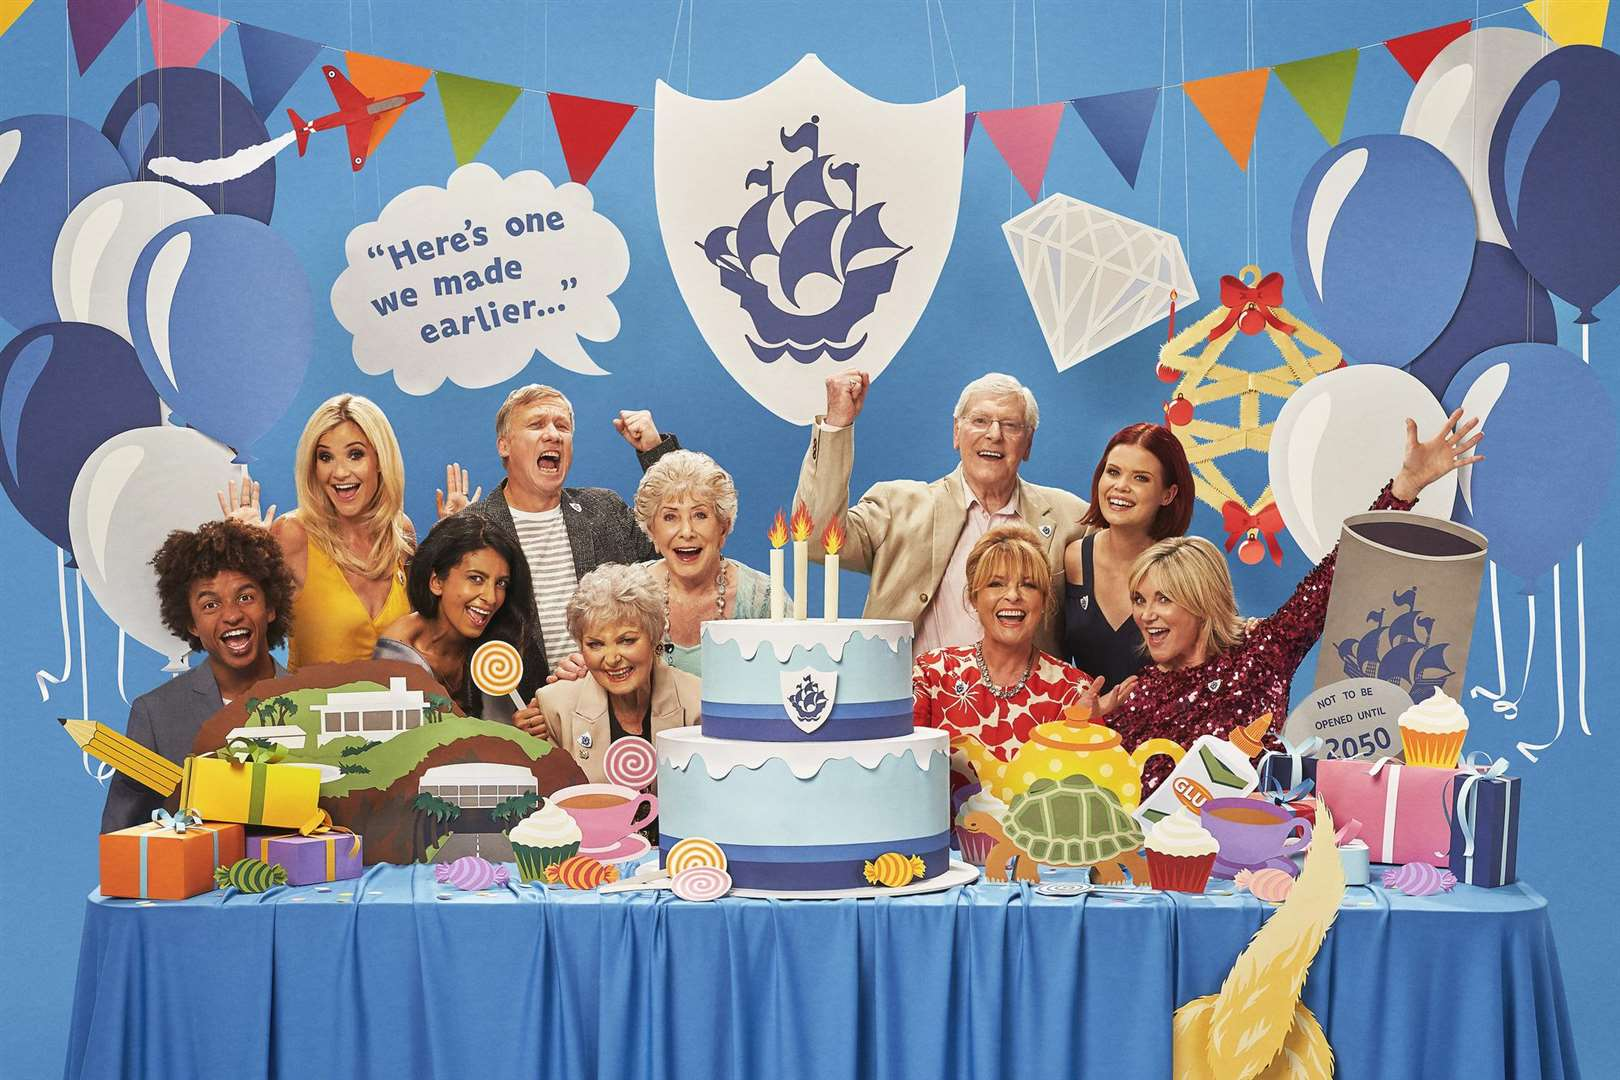 A special edition of Blue Peter airs on Monday to mark its 60th anniversary. Pictured are: Anthea Turner, Lindsey Russell, Janet Ellis, Peter Purves, Valerie Singleton, Leila Williams, Peter Duncan, Konnie Huq, Helen Skelton and Radzi Chinyanganya - (C) BBC - Photographer: Joe Giacomet.